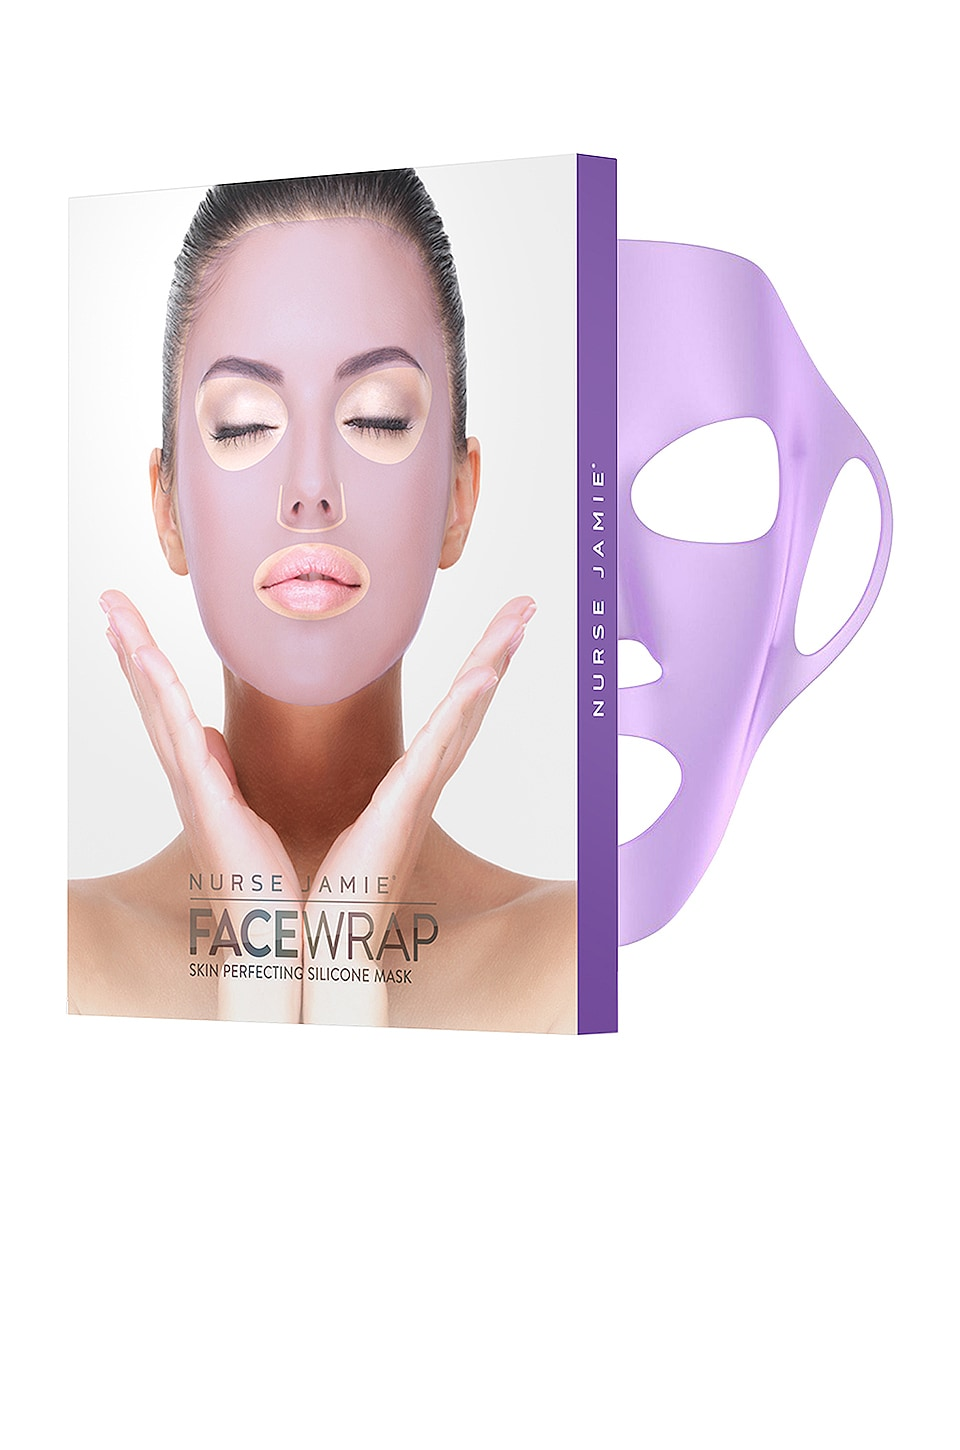 Nurse Jamie Face Wrap Skin Perfecting Silicone Mask